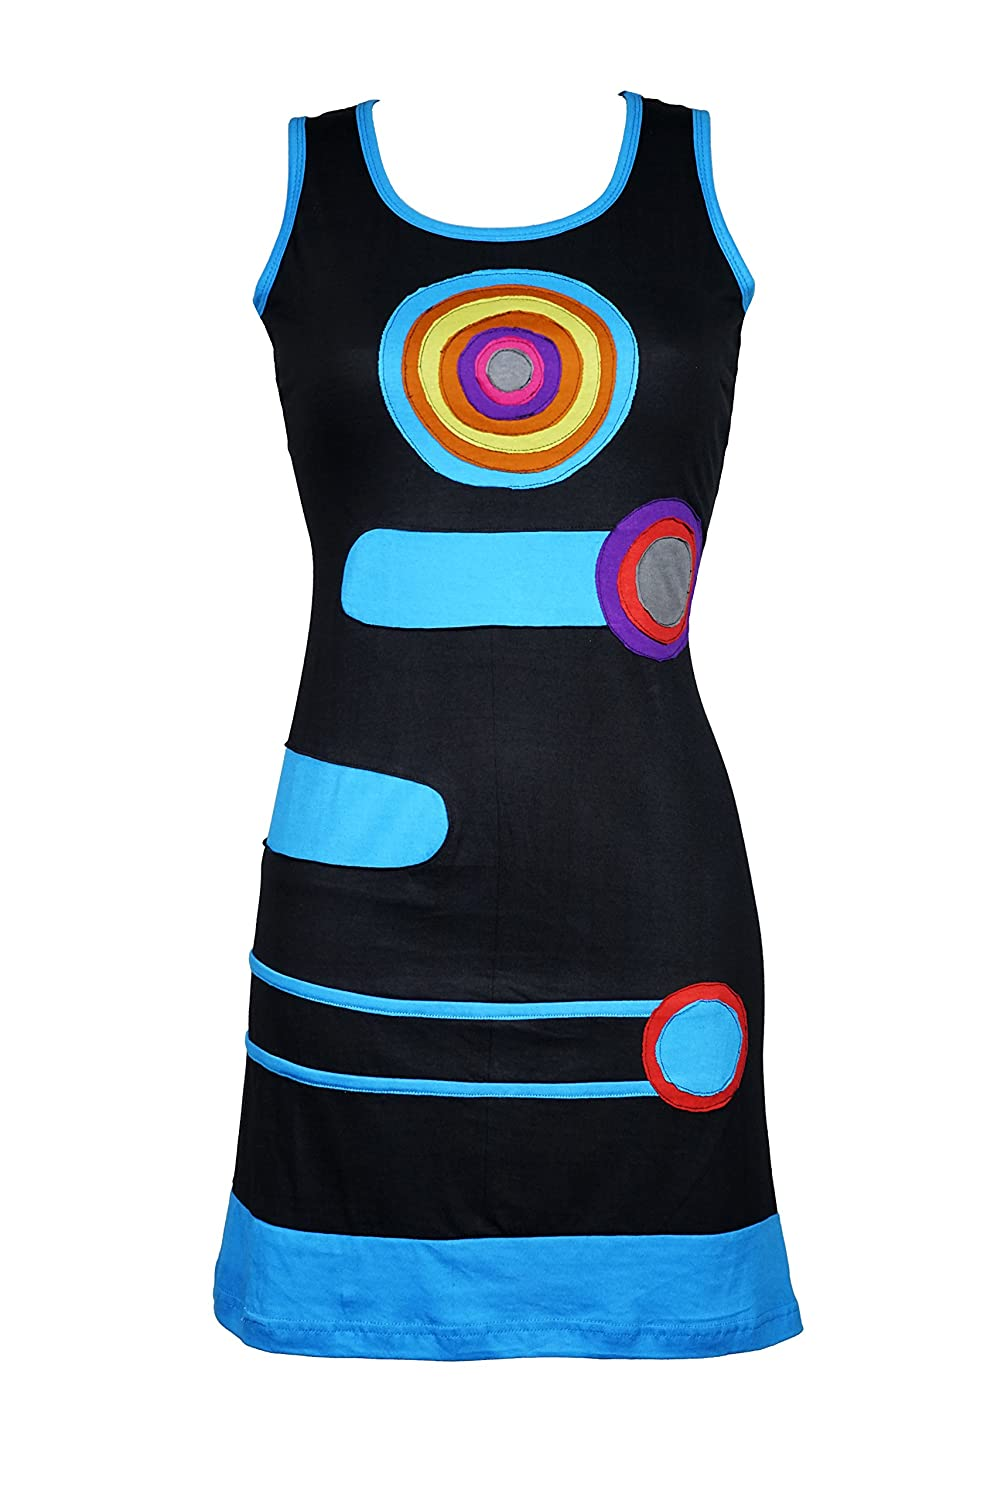 Luftiges Mini Kleid im Patchwork Design - Ethno - Hippie - 100% Baumwolle - CHAKRA